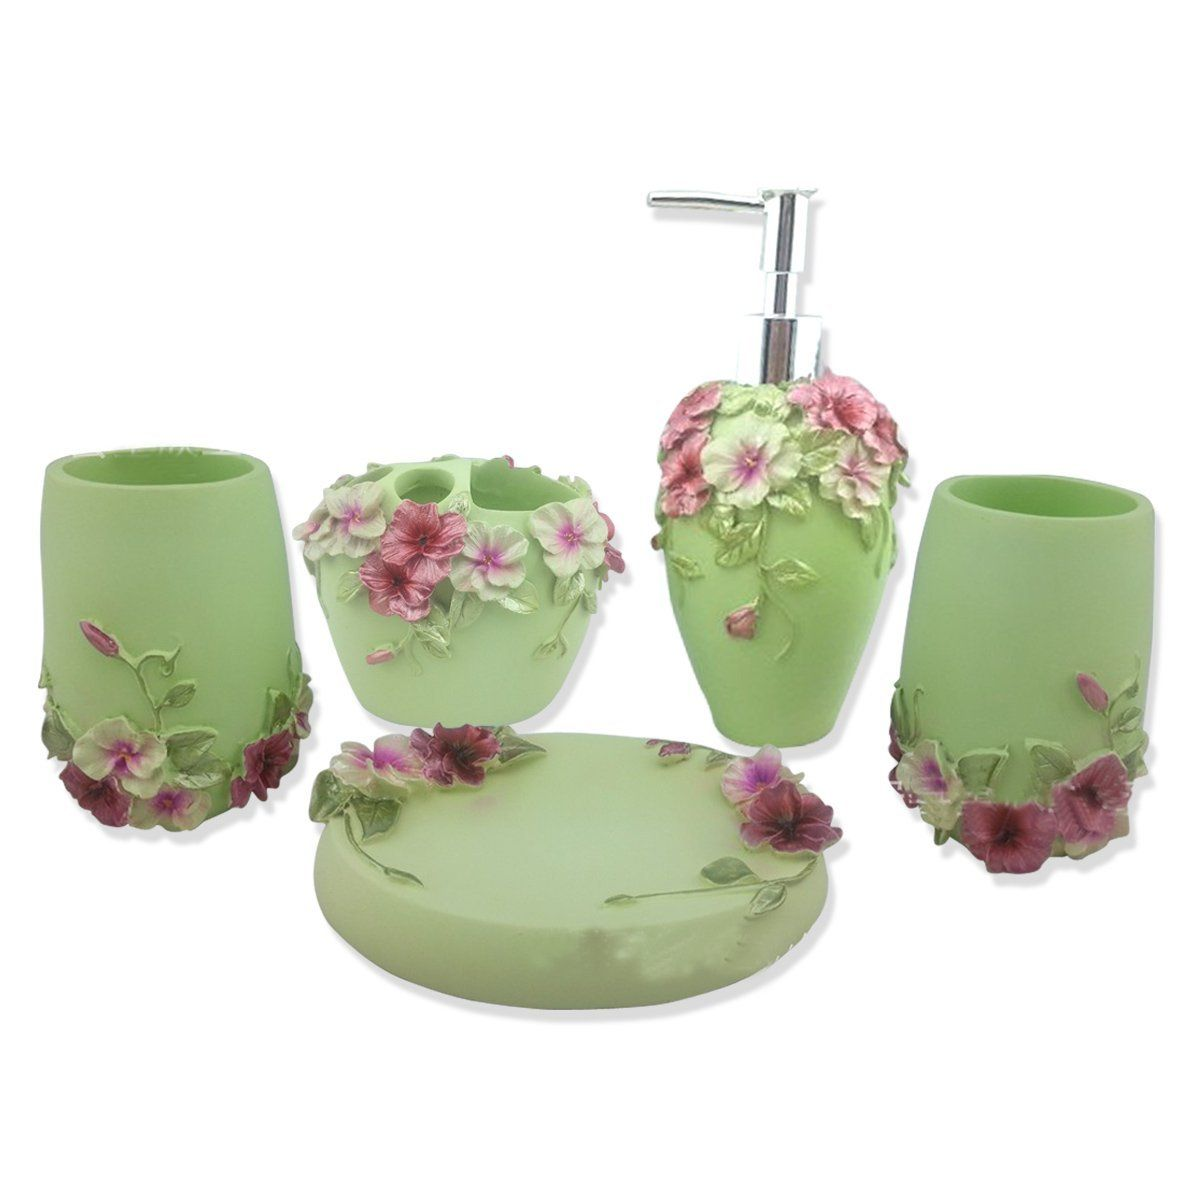 Resin Bathroom Accessories Hqdeal 5pc Set Acrylic Bathroom Accessories Bathroom Set Flowers